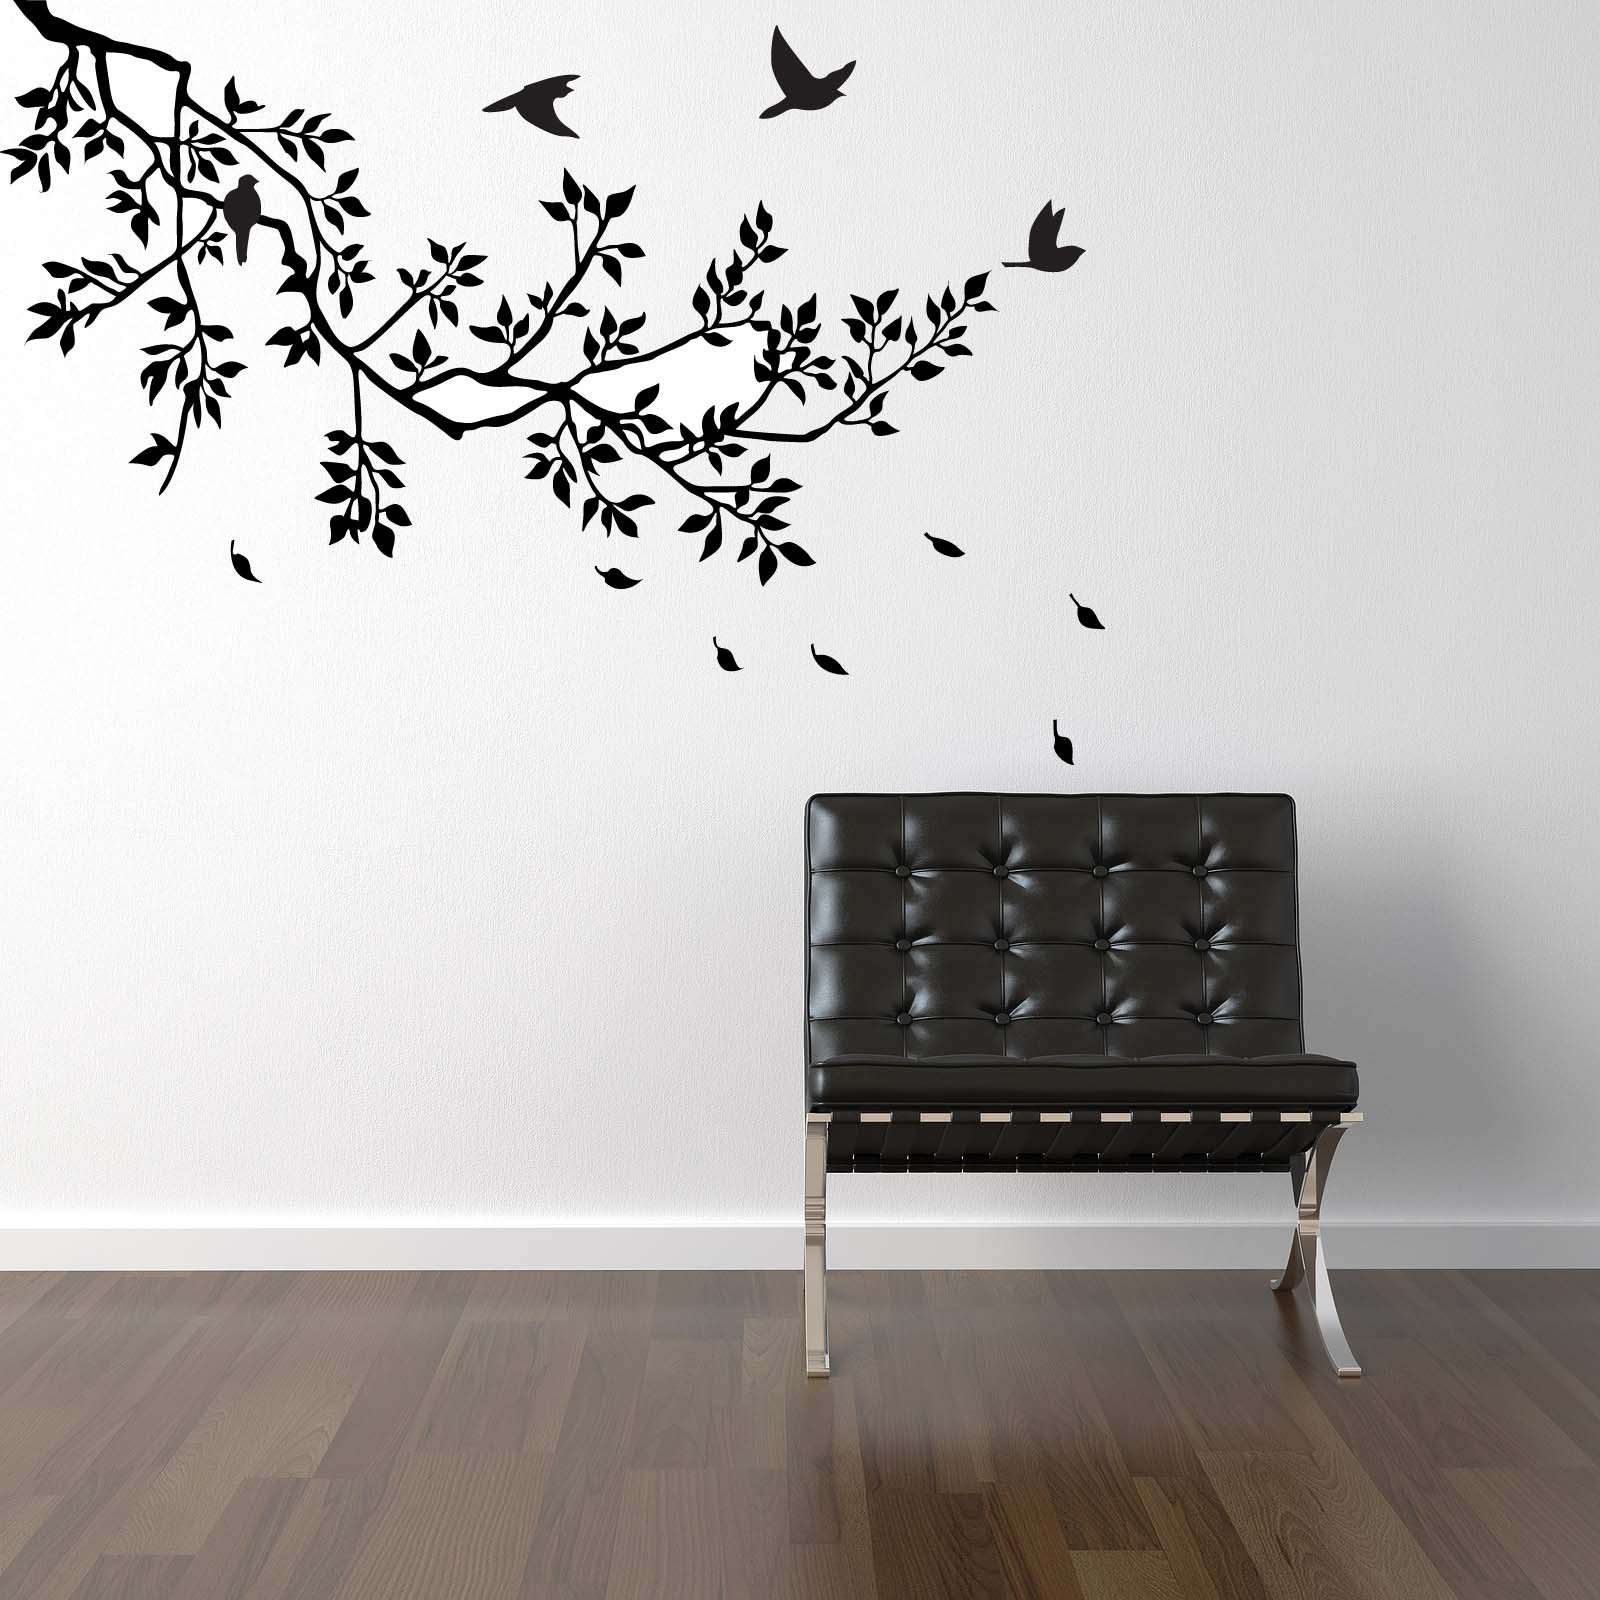 Black Tree Wall Decoration Ideas on White Painted Wall Used in Simple Room with Laminate Flooring